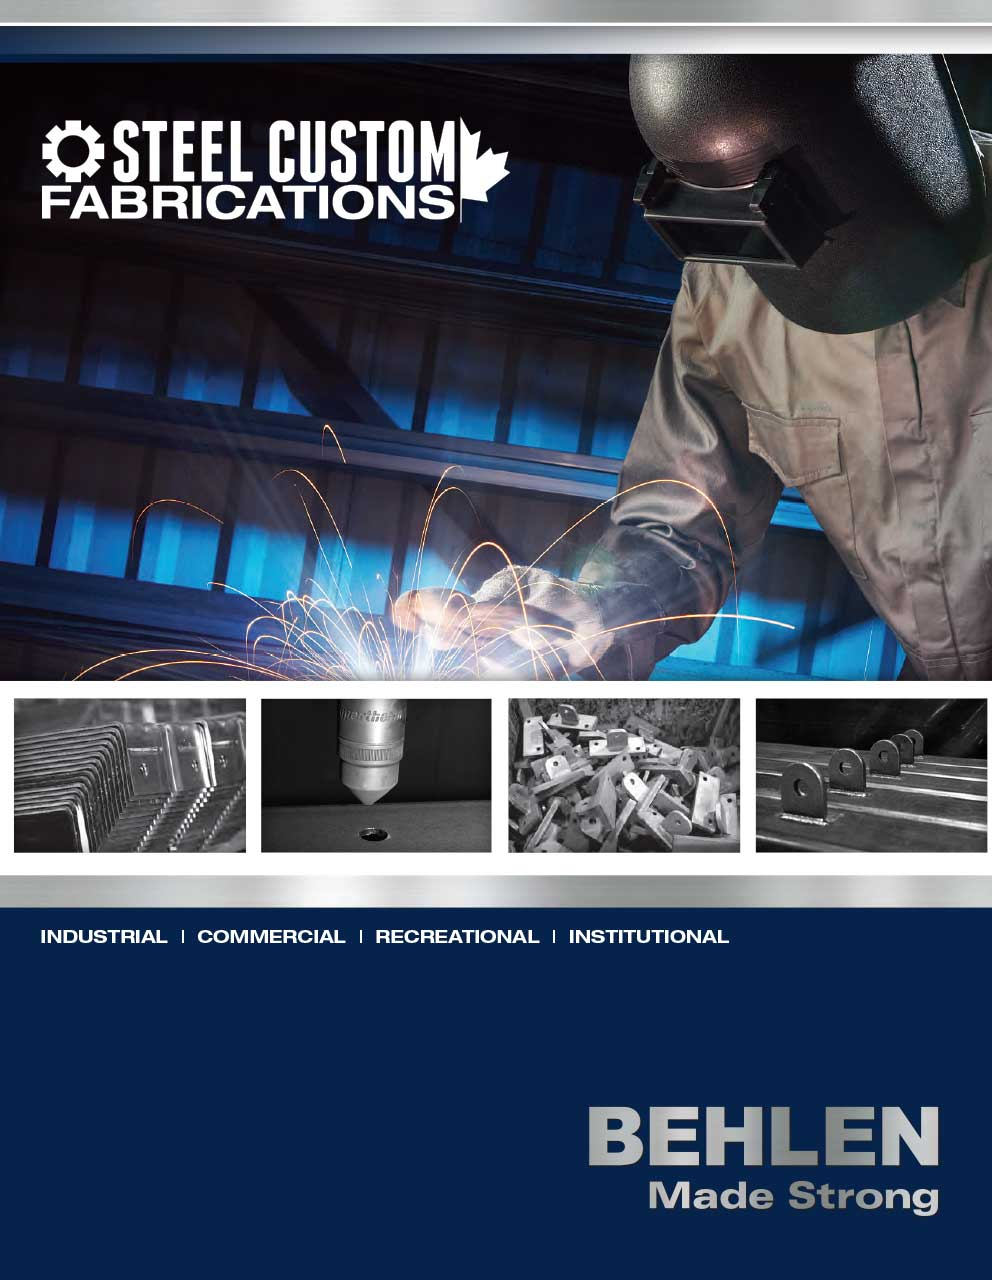 Behlen Industries - Steel Custom Fabrications